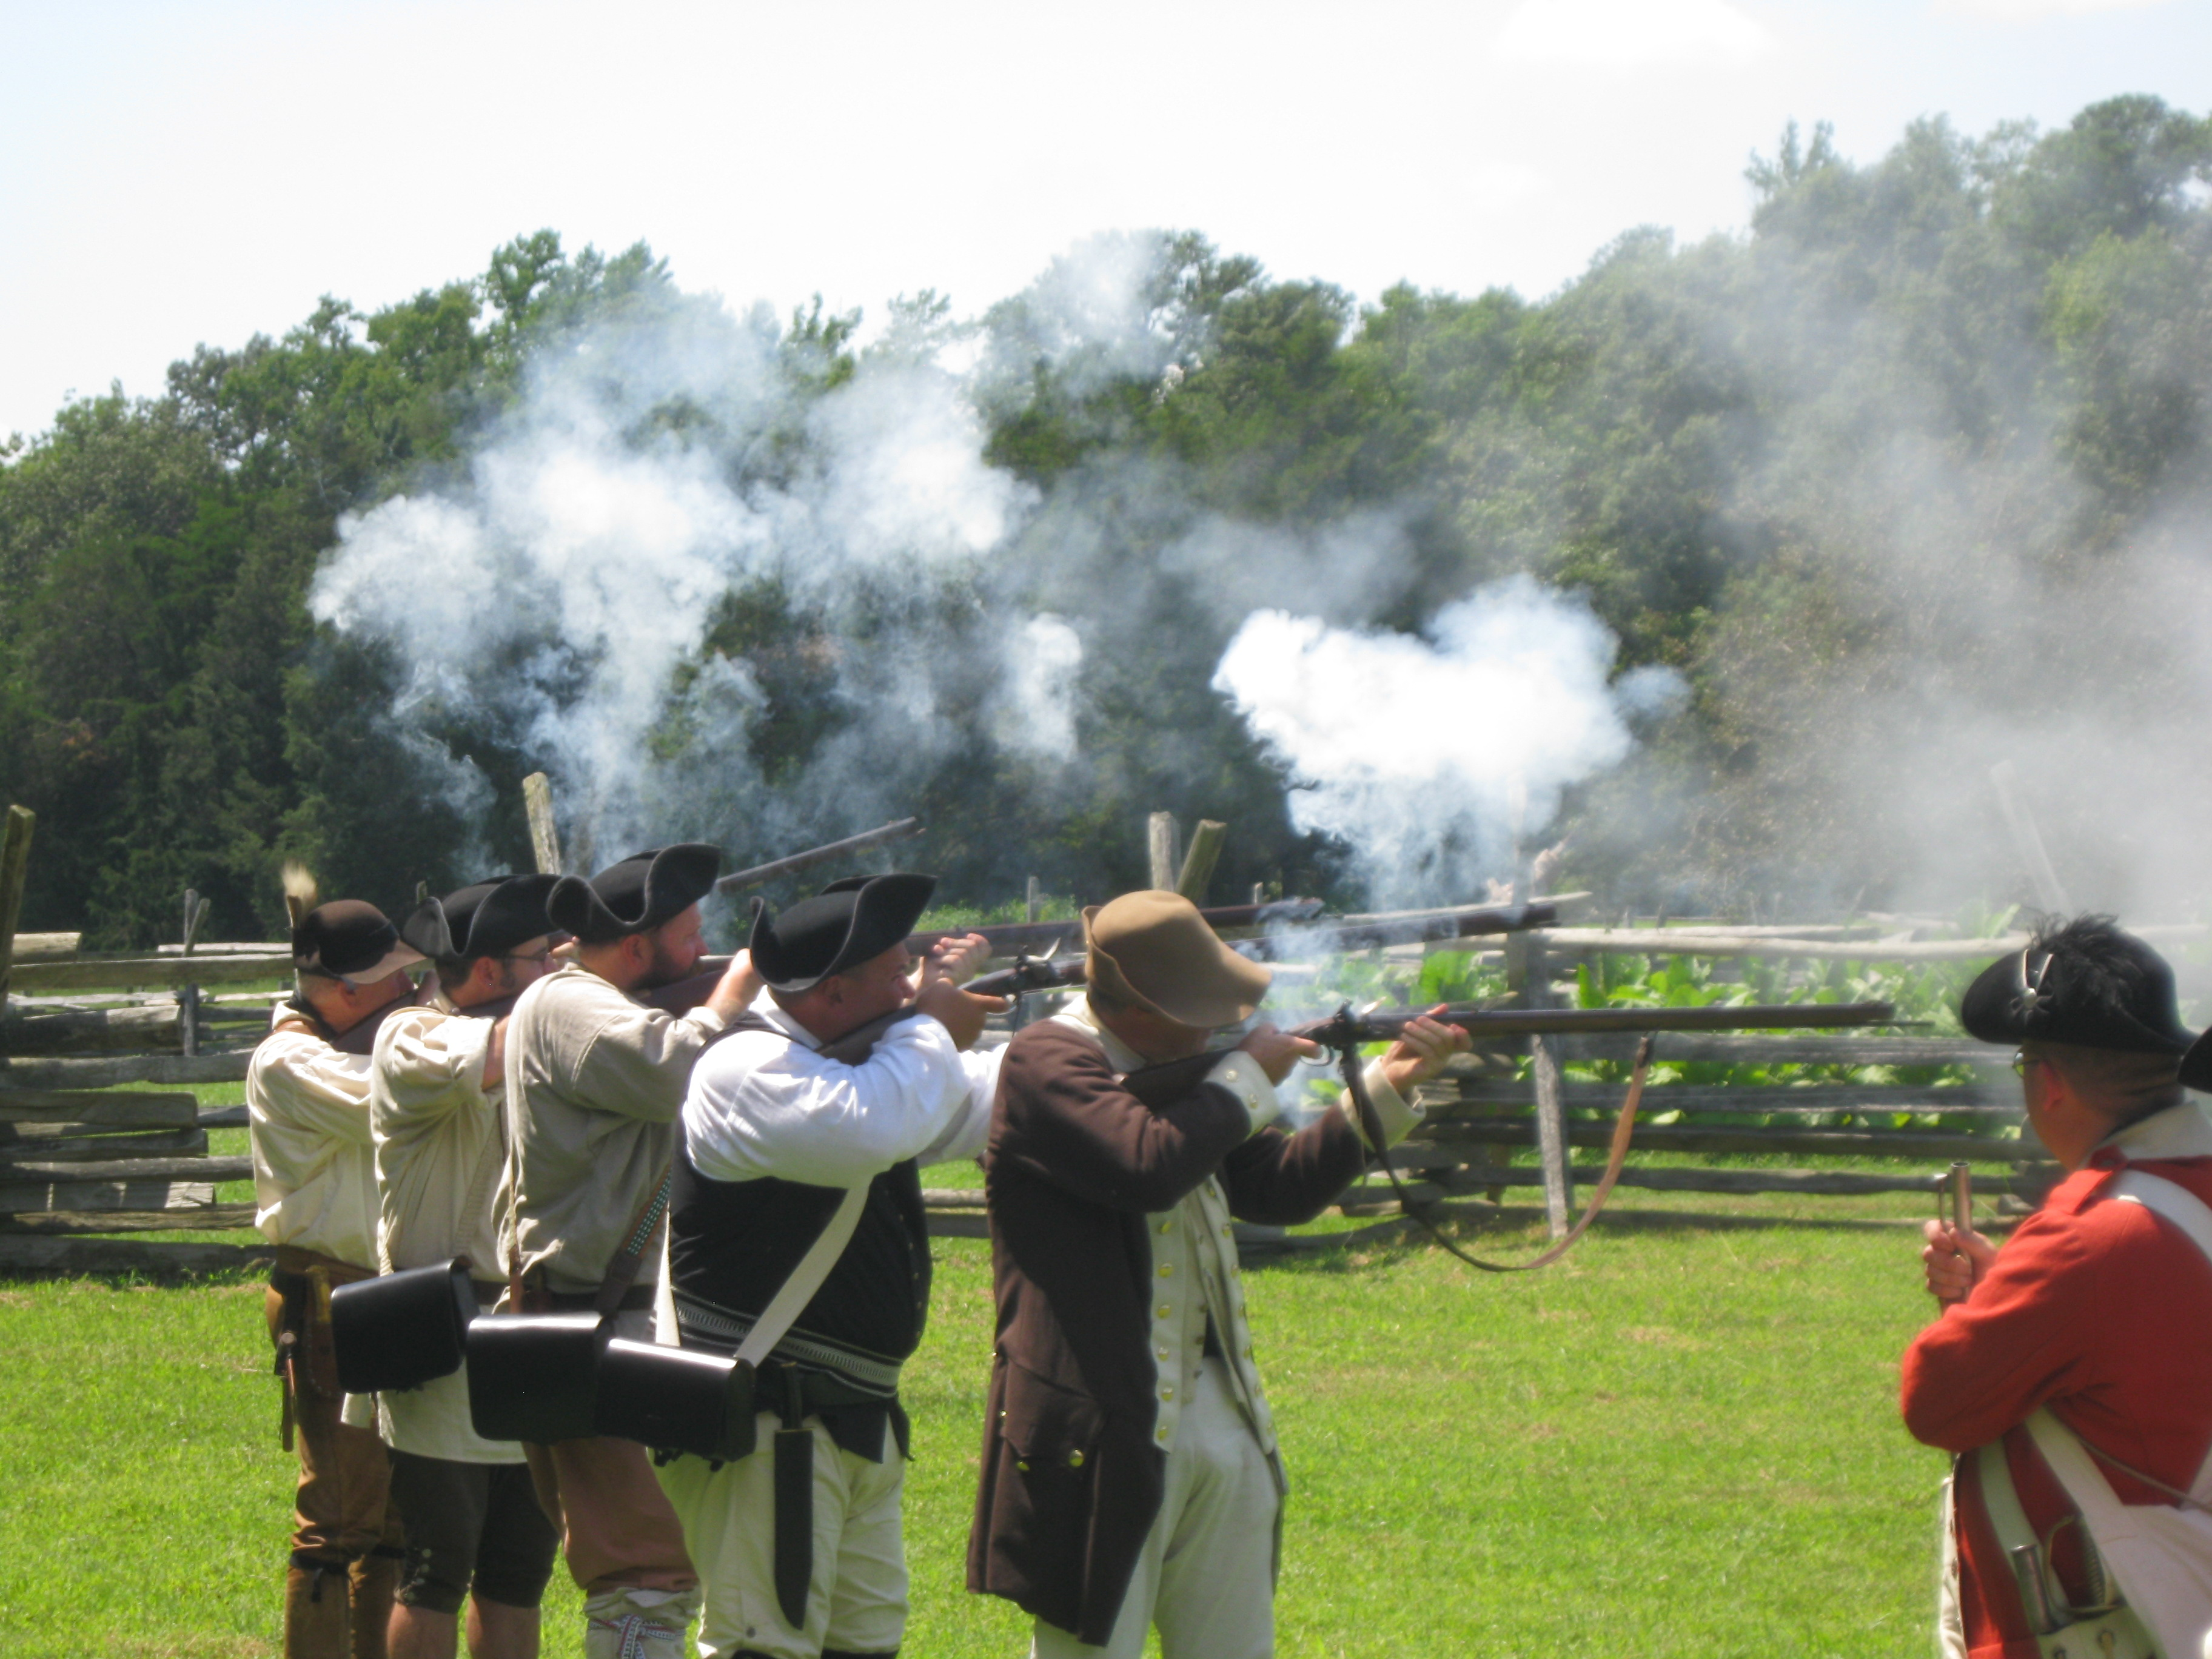 American militia fire a volley